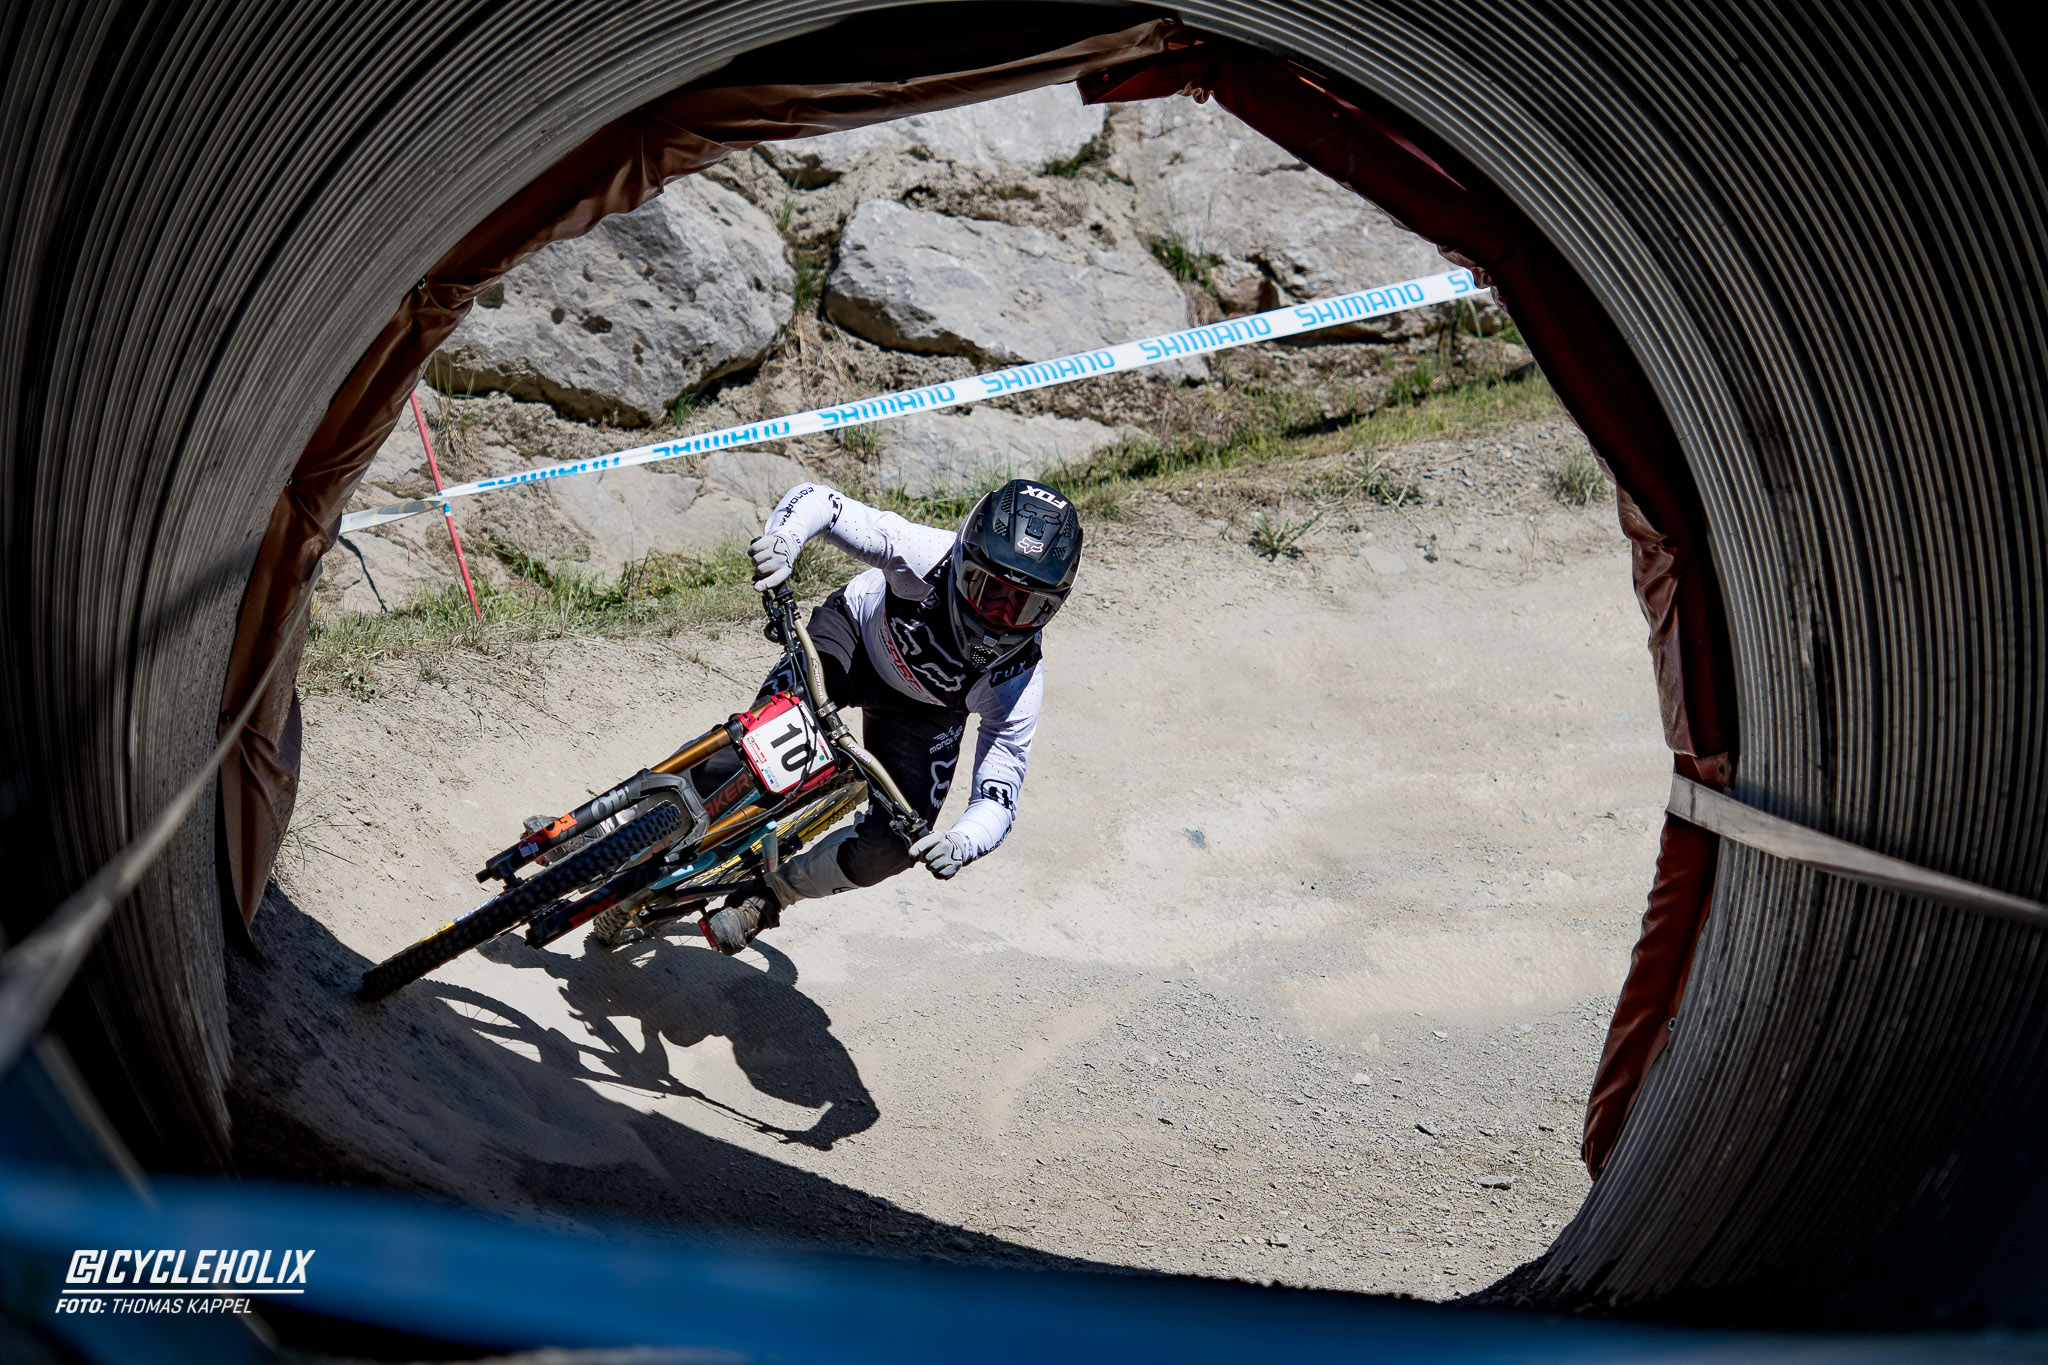 2019 Downhill Worldcup Leogang Finale Action FR 1